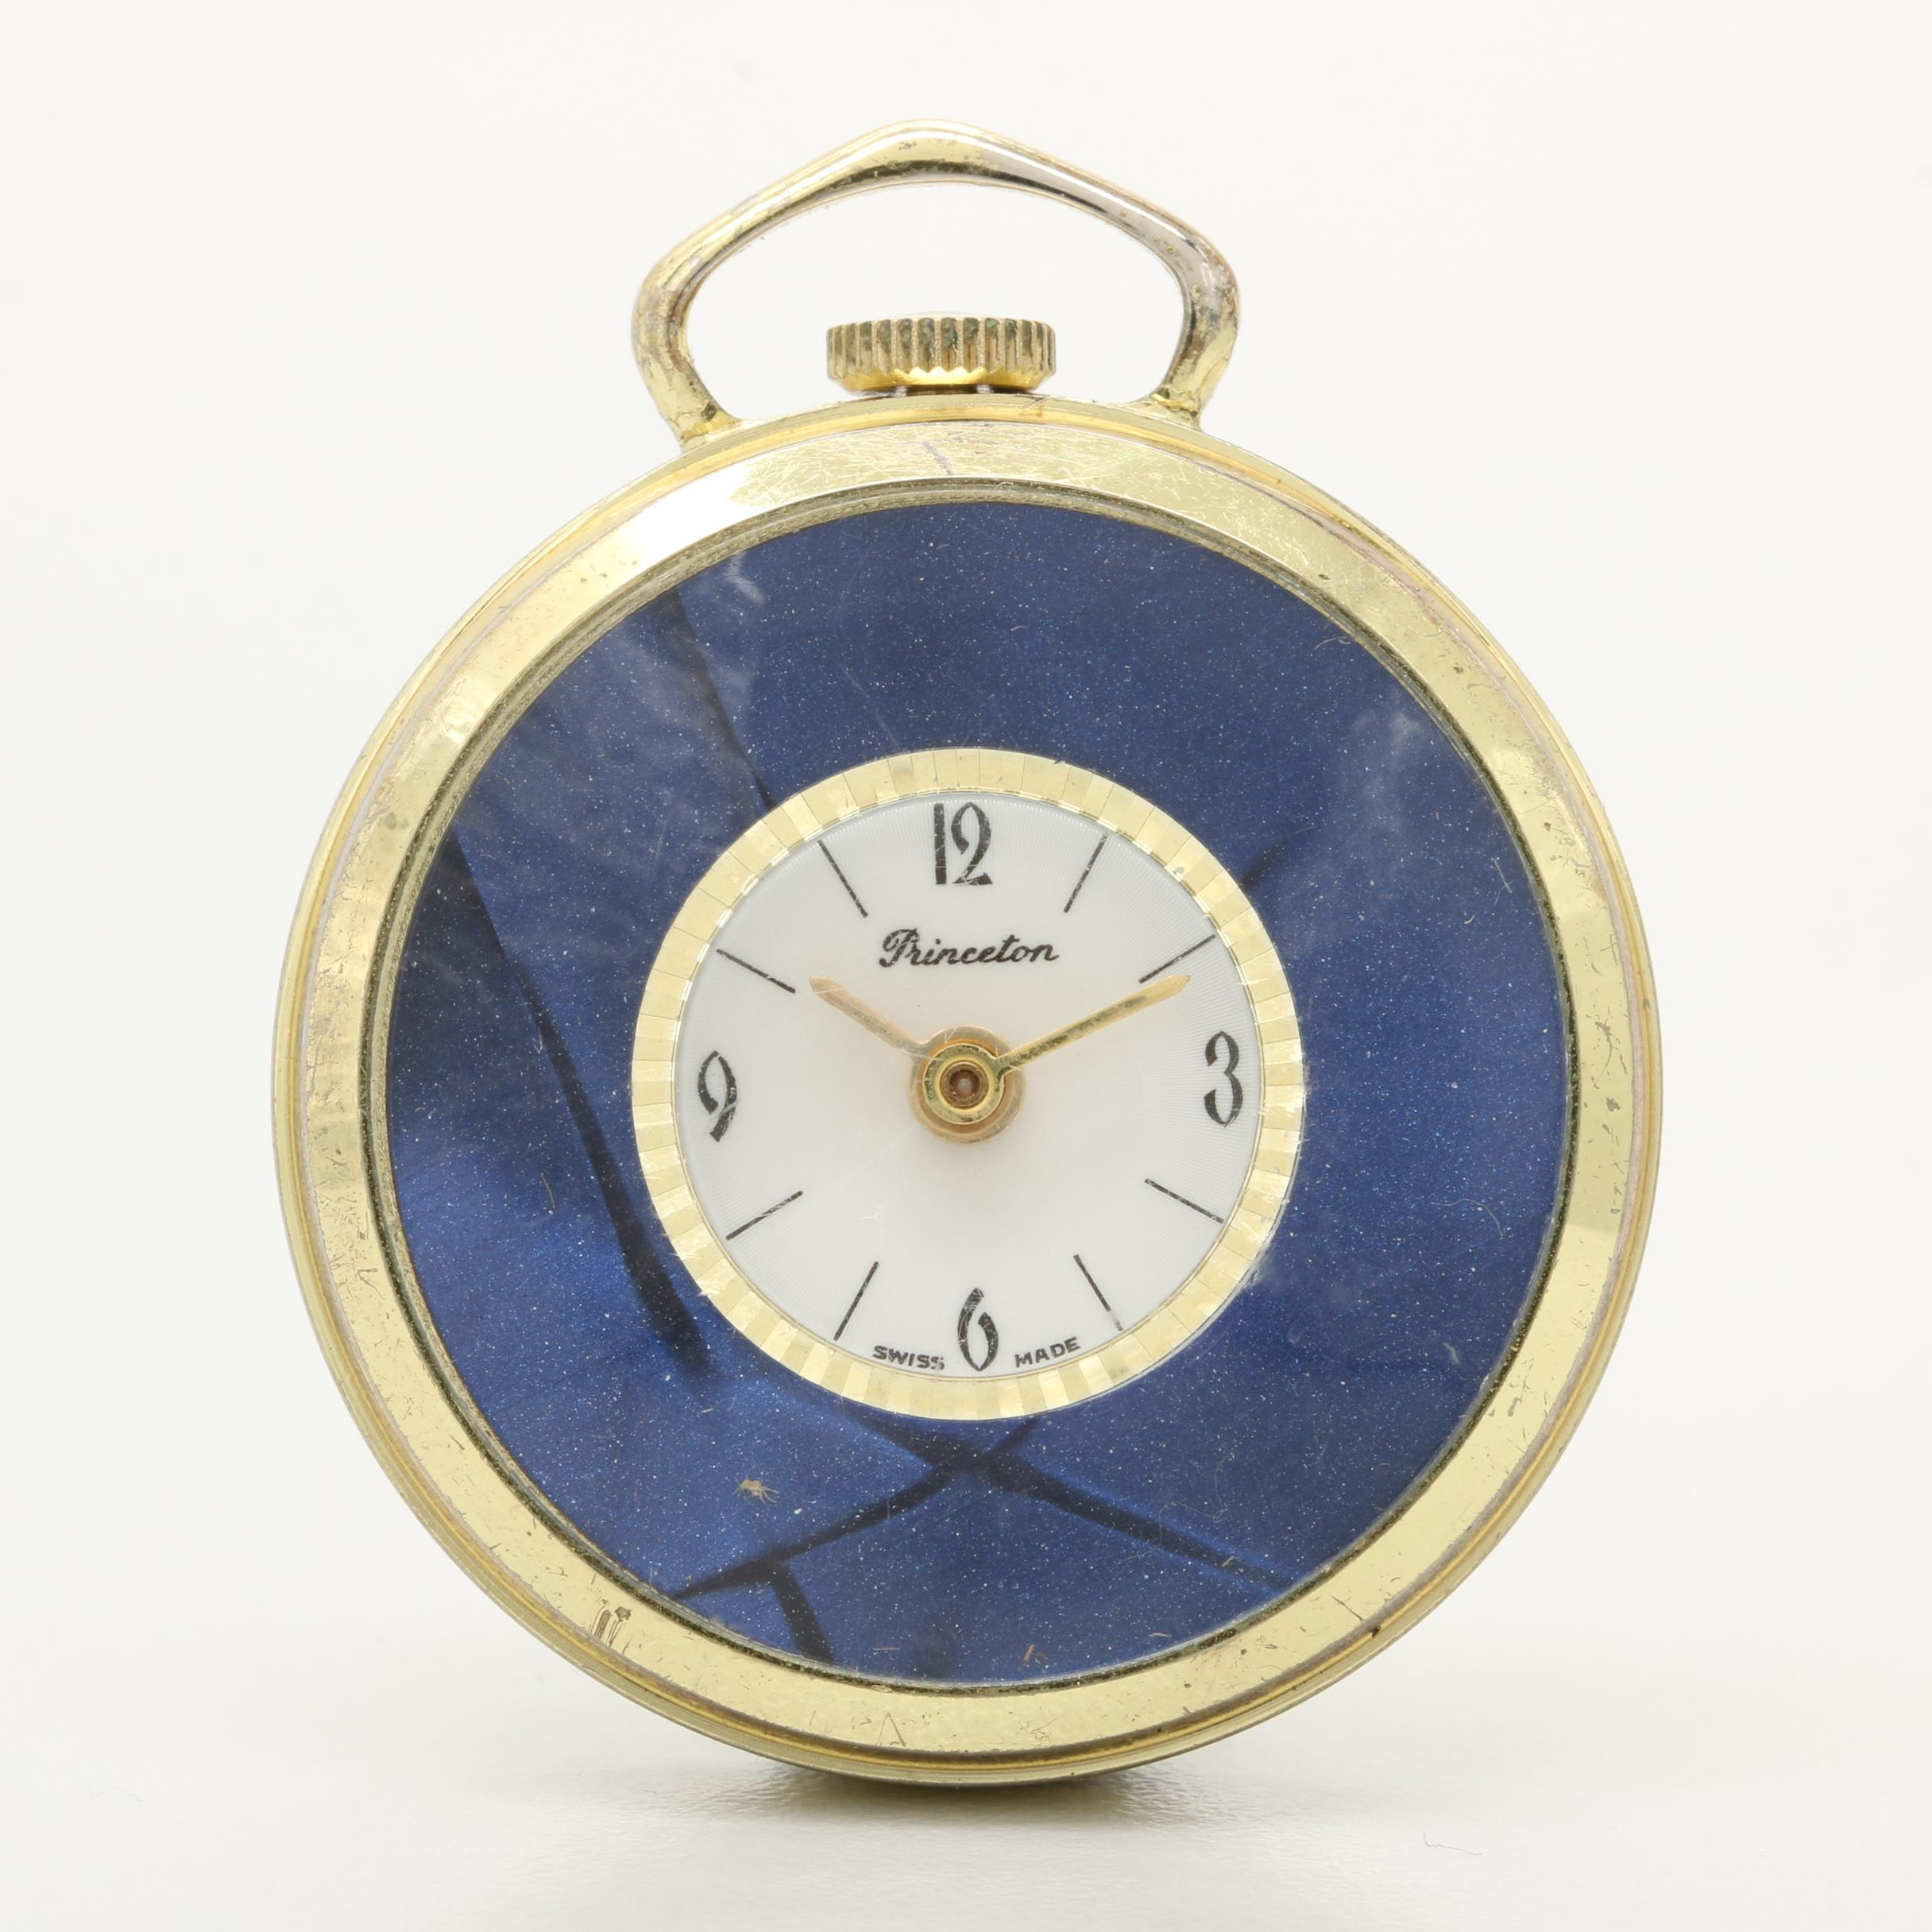 Princeton Swiss Made Open Face Pocket Watch